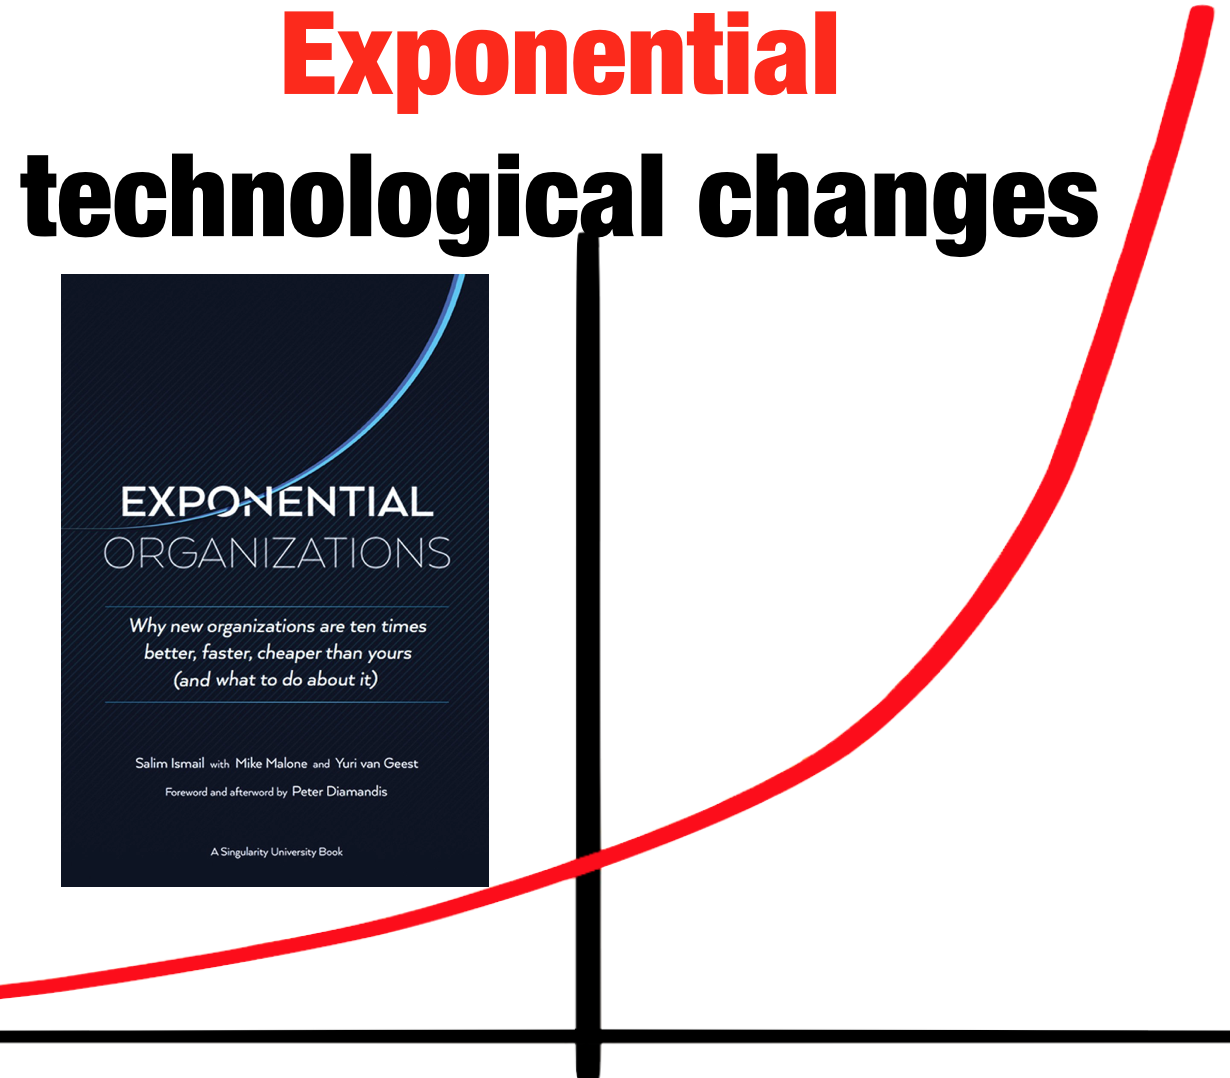 exponential technological changes